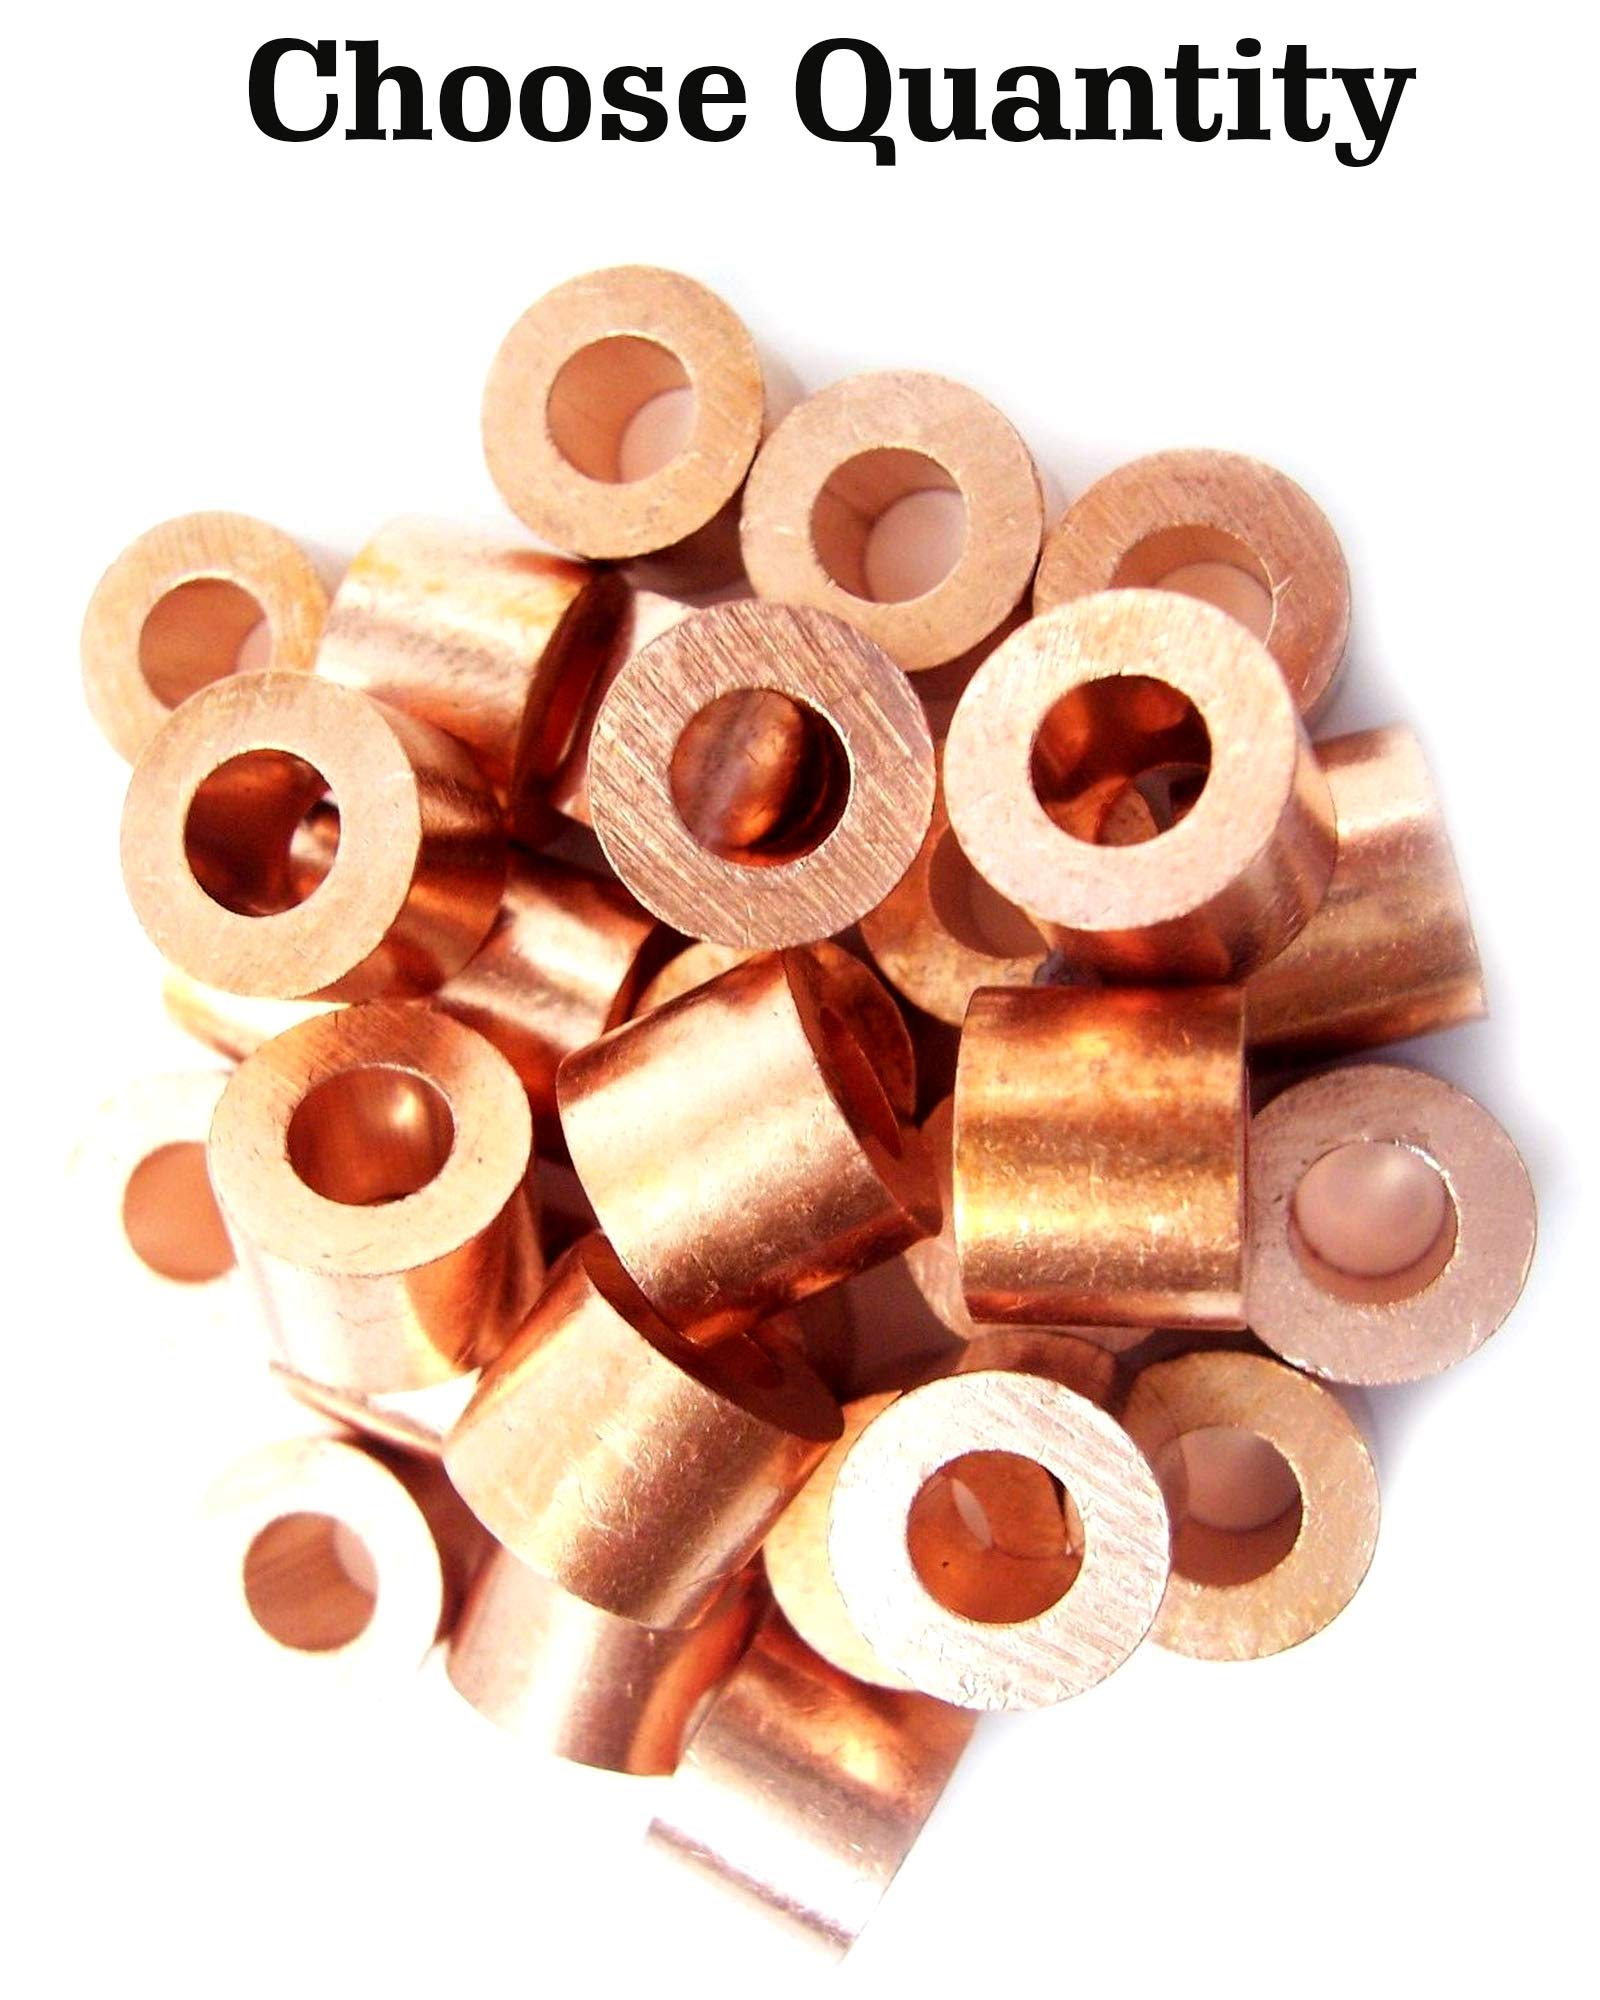 Copper Swage Stop for 3/16'' Wire Rope Cable - Copper Cable Stop Sleeve for 3/16 Inch Wire Rope Swage Clip Copper Cable Crimp Sleeves Cable Stops 3/16'' Copper Swage Sleeves (60)